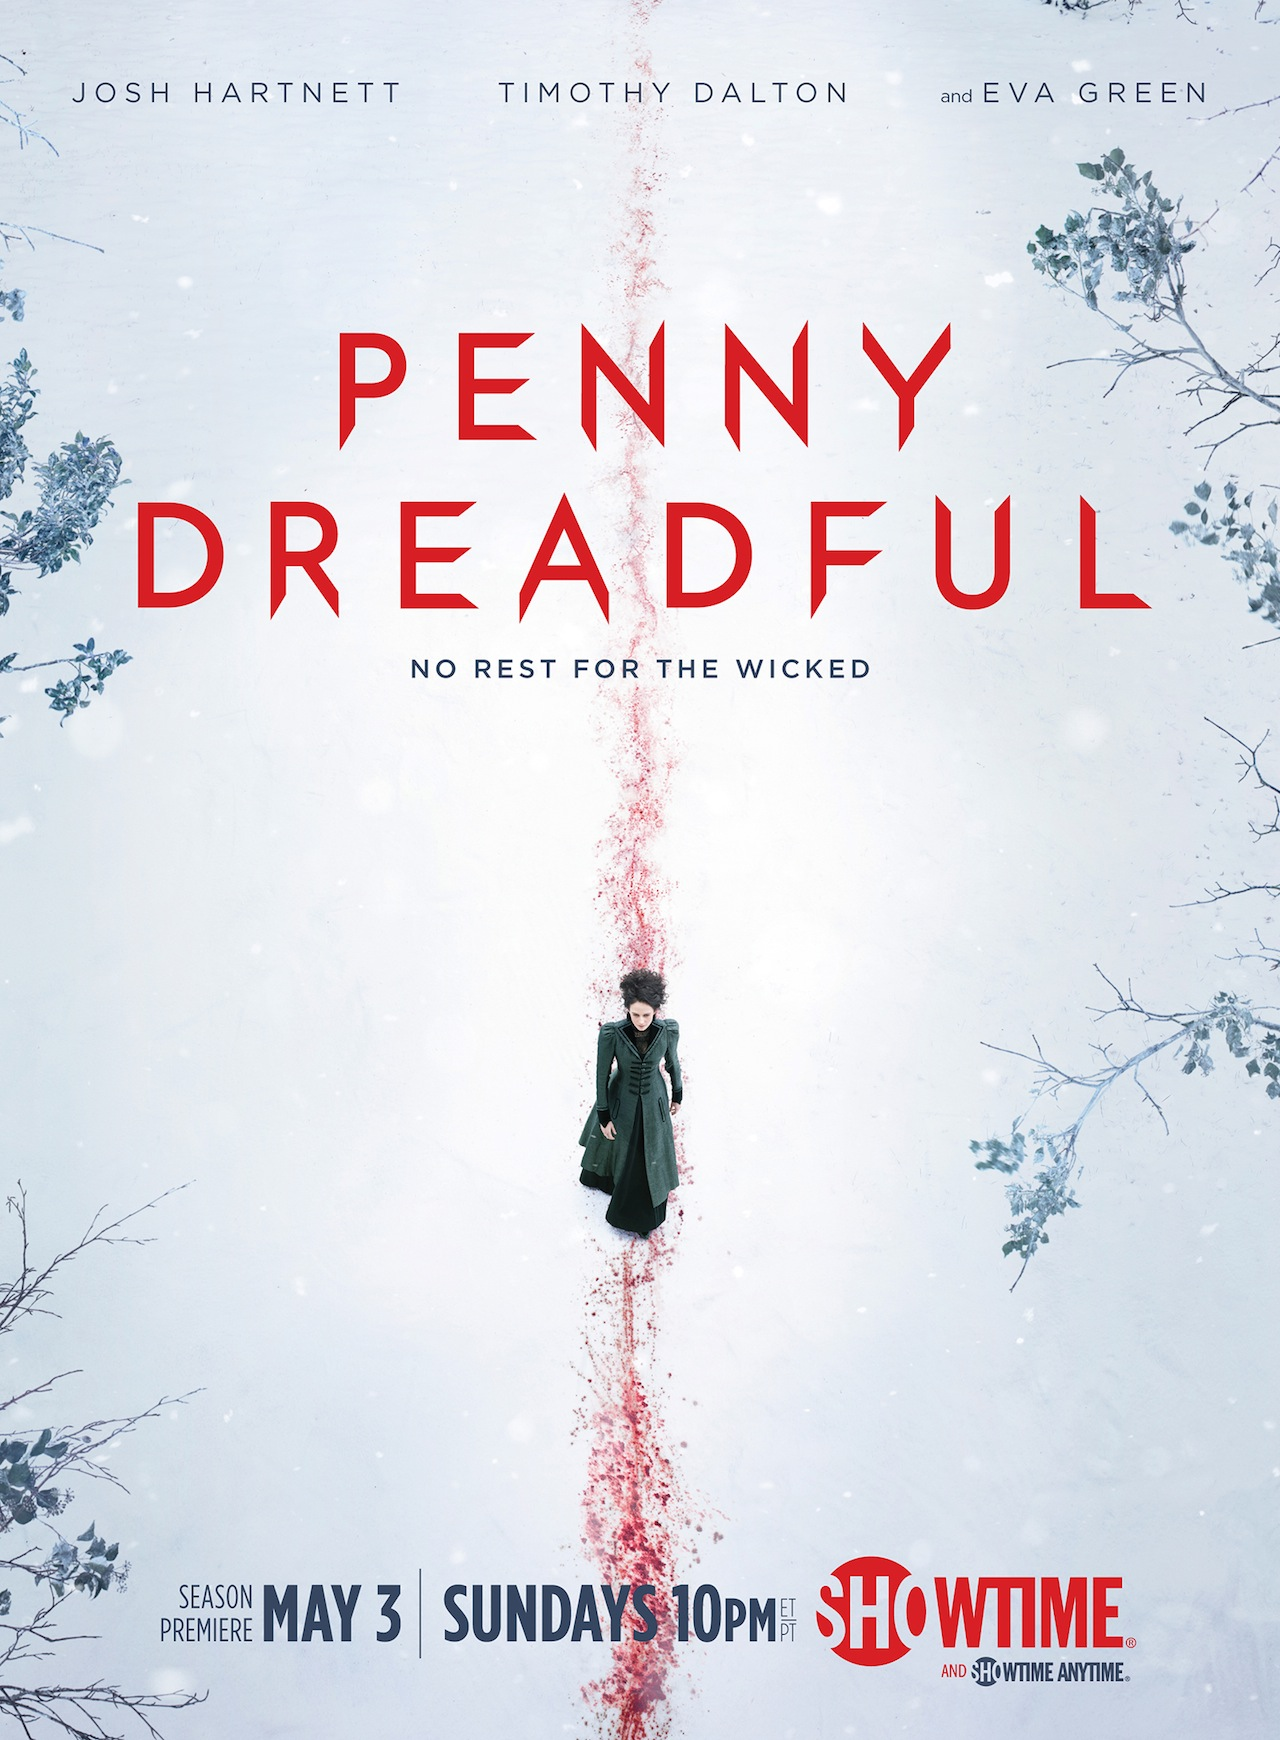 http://www.elbakin.net/plume/xmedia/fantasy/news/television/showtime/penny-dreadful.jpg